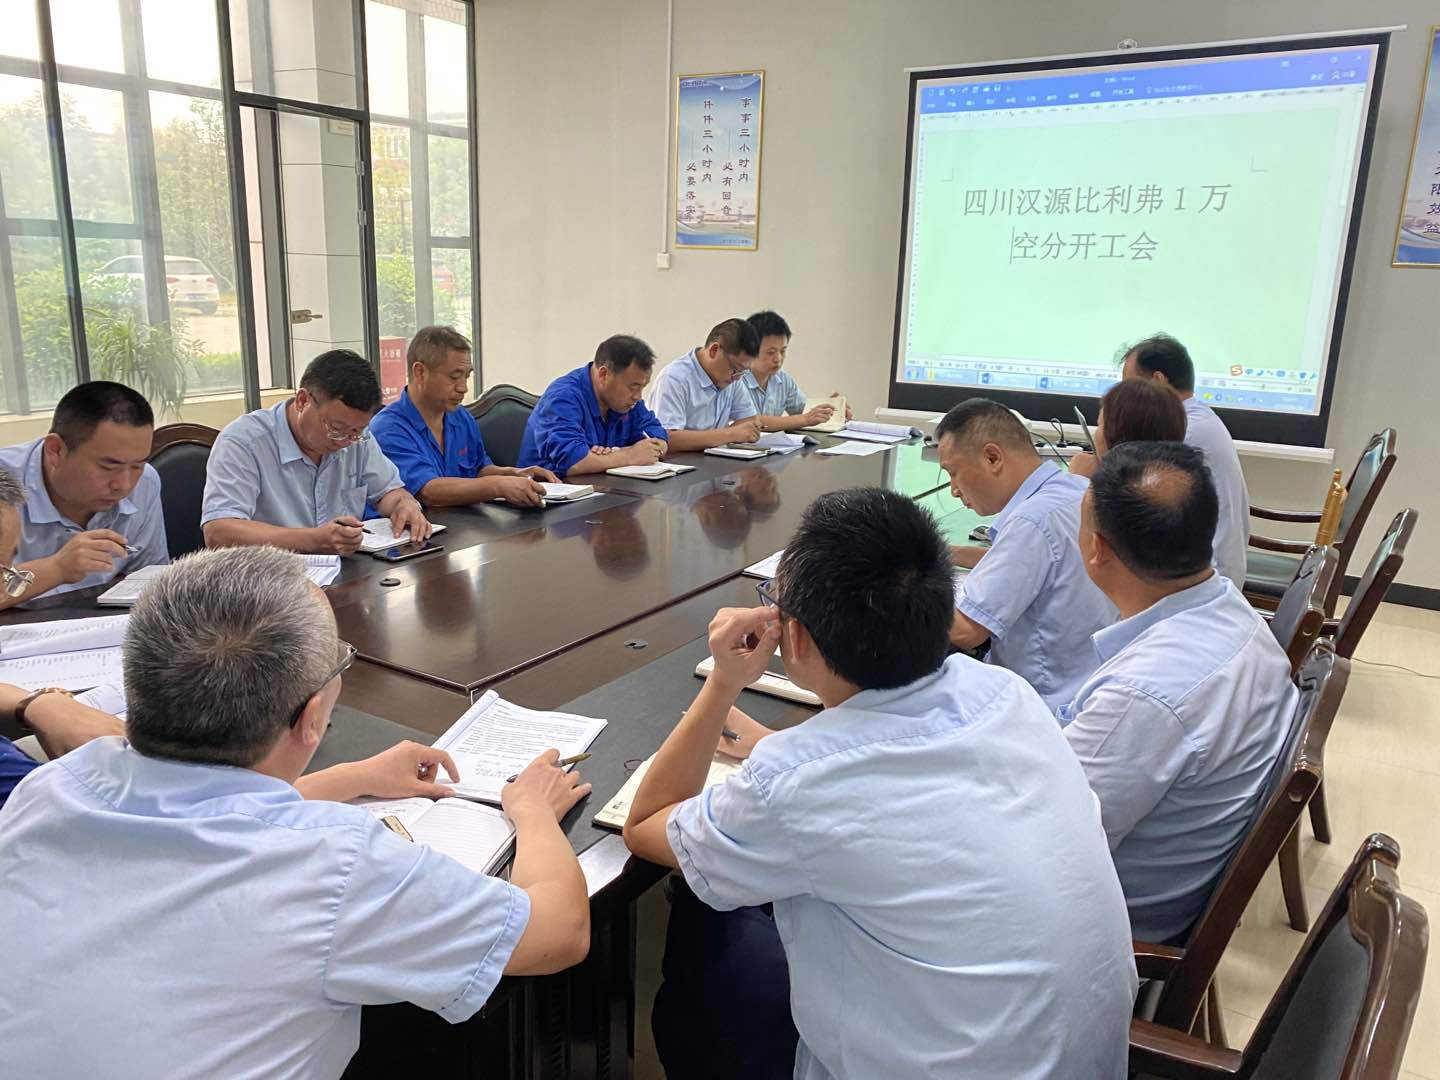 Kaifeng DEAR air separation Co., Ltd. successfully signed the supply contract for the KDON-10000 / 7000 air separation plant of Hanyuan Bilifu Environmental Protection Technology Co., Ltd